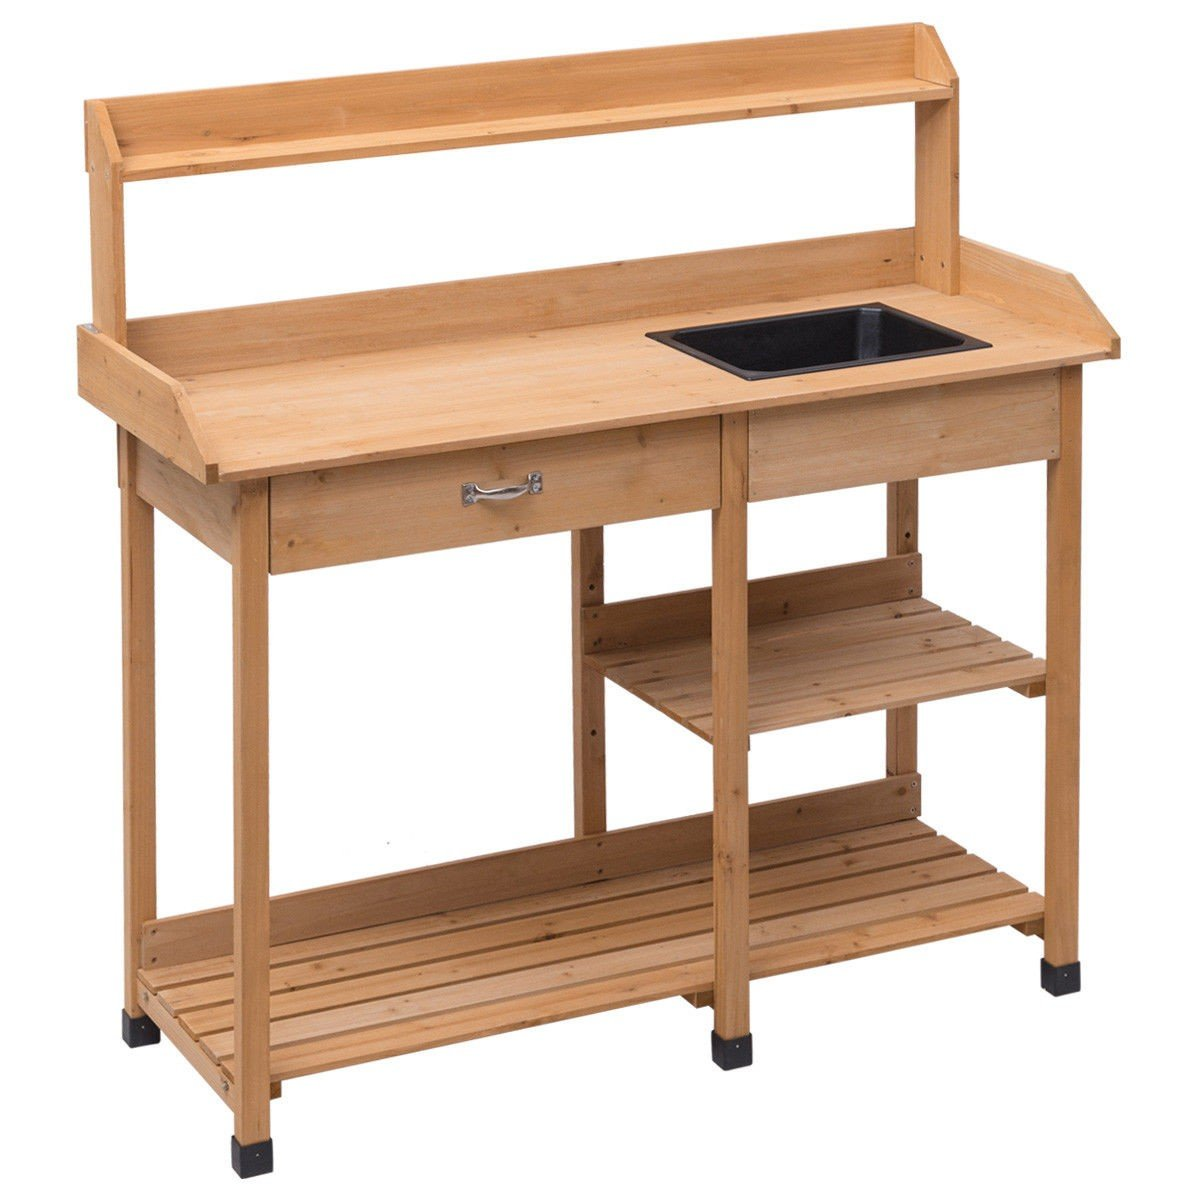 Garden Planting Work Station Stand Potting Bench Storage Table Shelf Outdoor Lawn Patio With Ebook